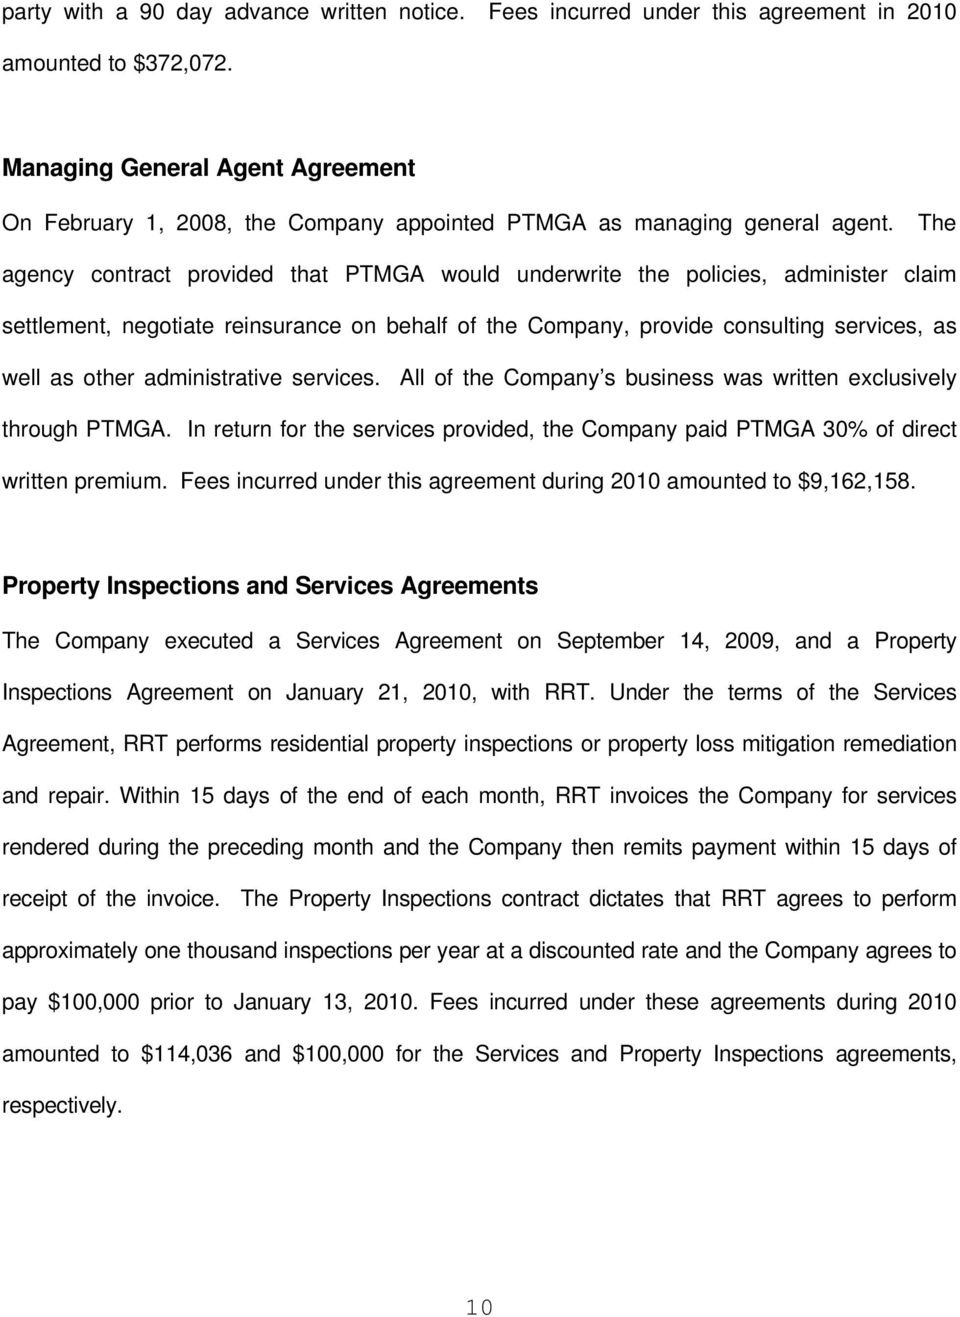 The agency contract provided that PTMGA would underwrite the policies, administer claim settlement, negotiate reinsurance on behalf of the Company, provide consulting services, as well as other